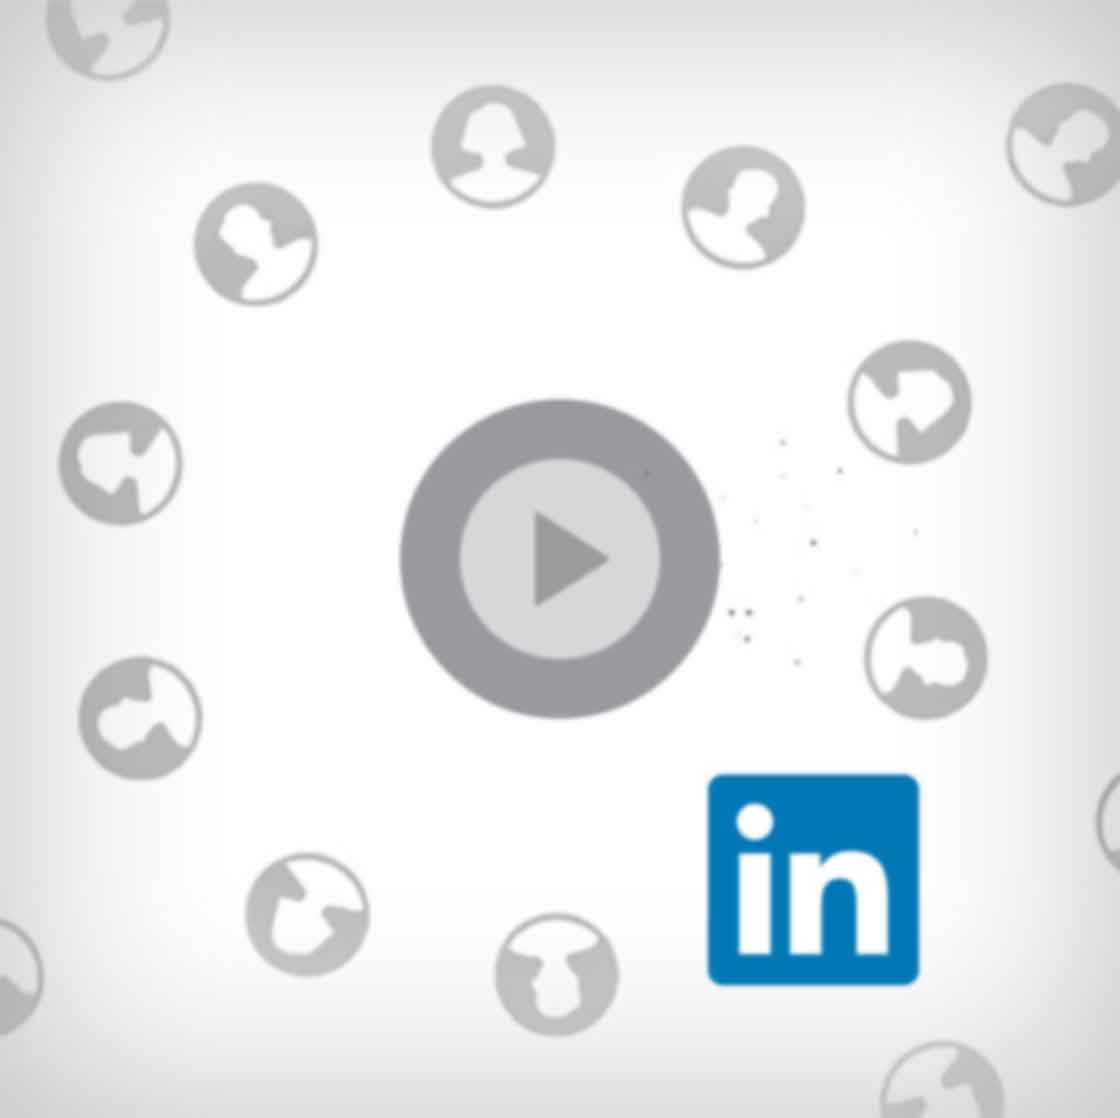 Product marketing for Linkedin